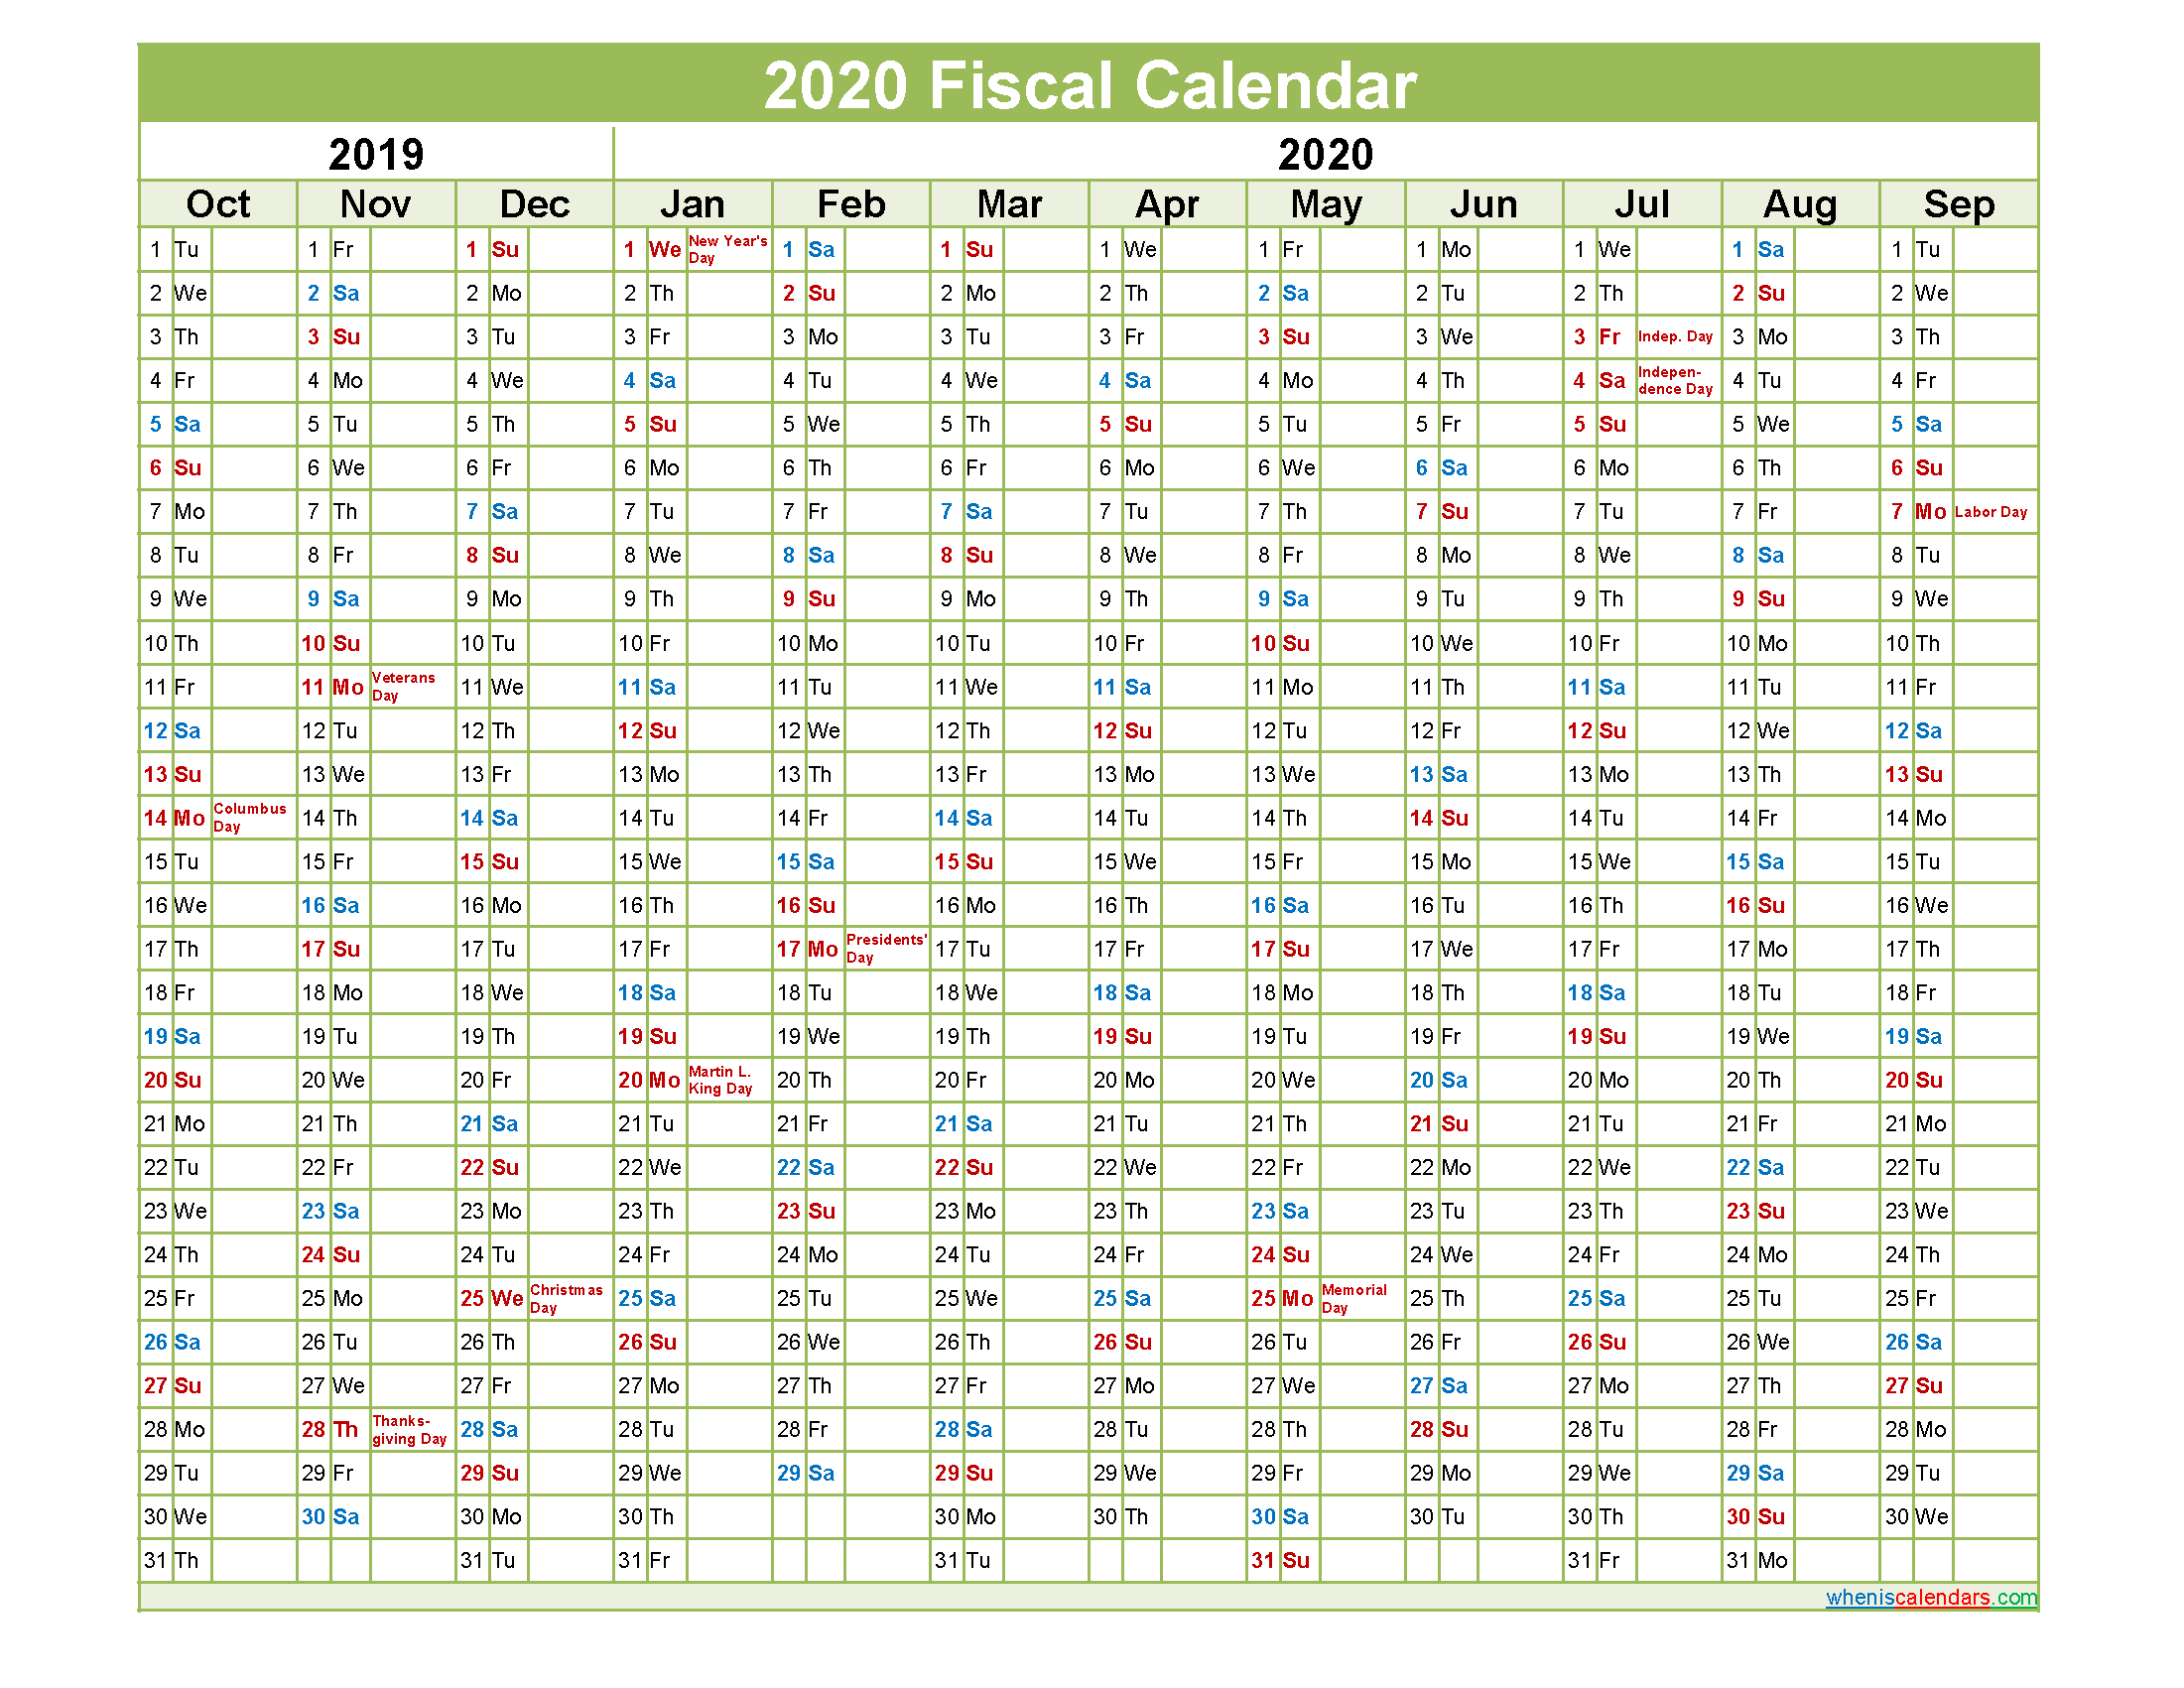 Fiscal Year 2020 Quarters